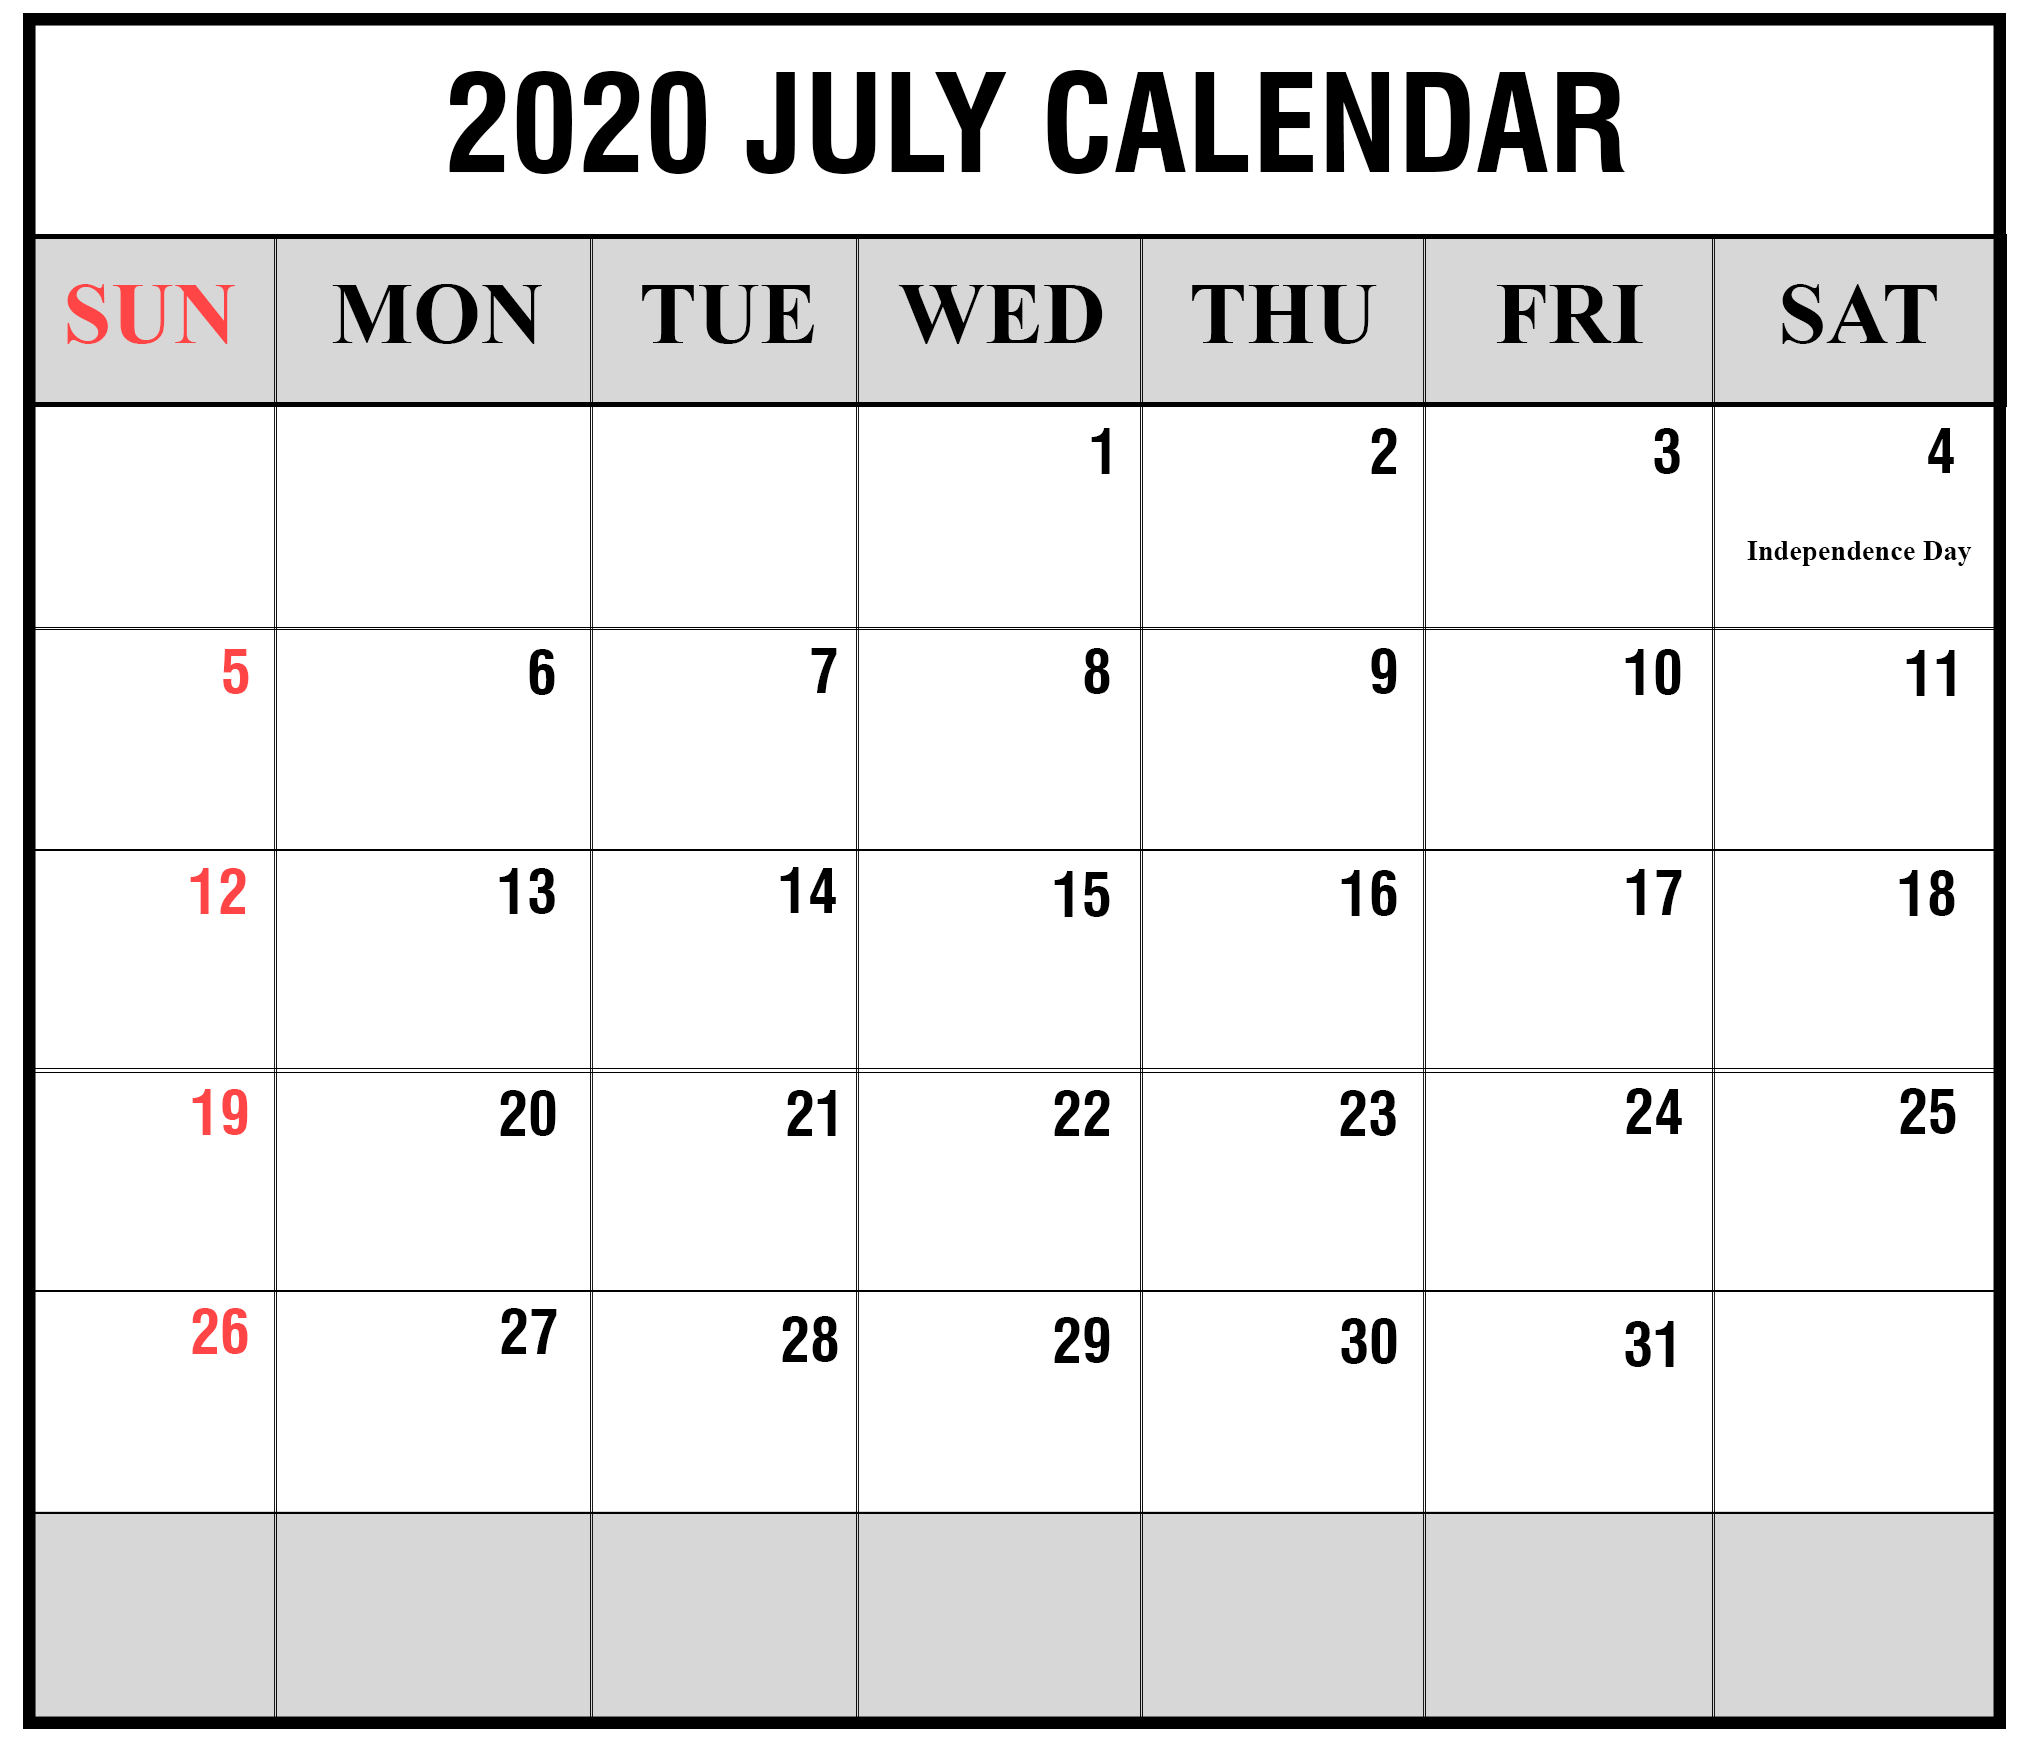 2020 July Calendar with Holidays